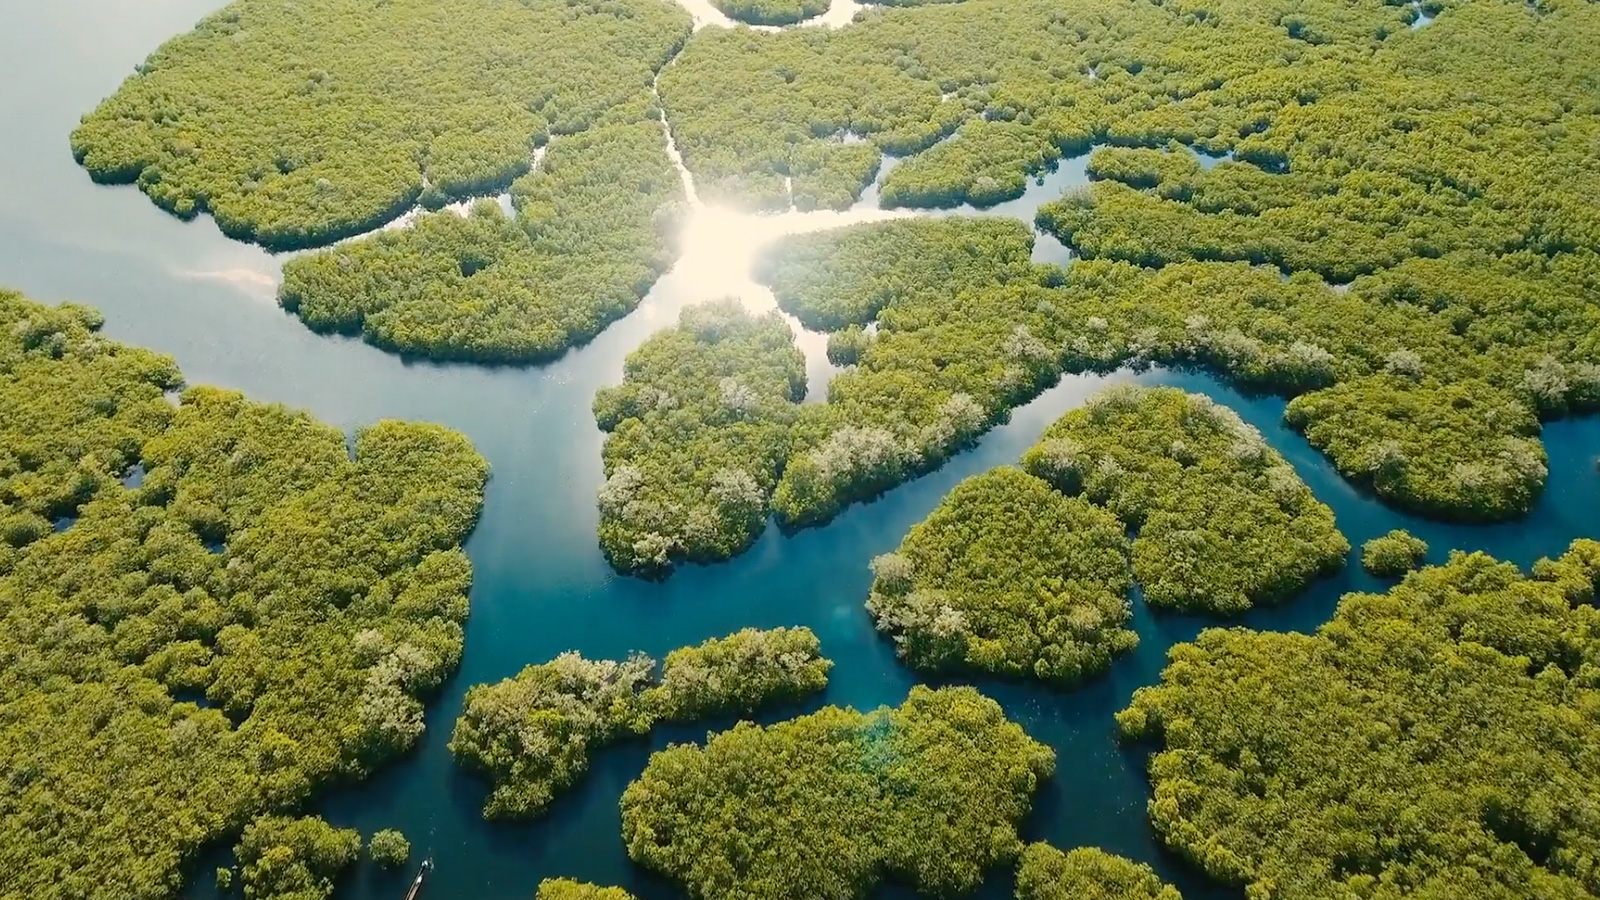 Mapping Mangroves - A video for The Nature Conservancy, IUCN & Cambridge University →